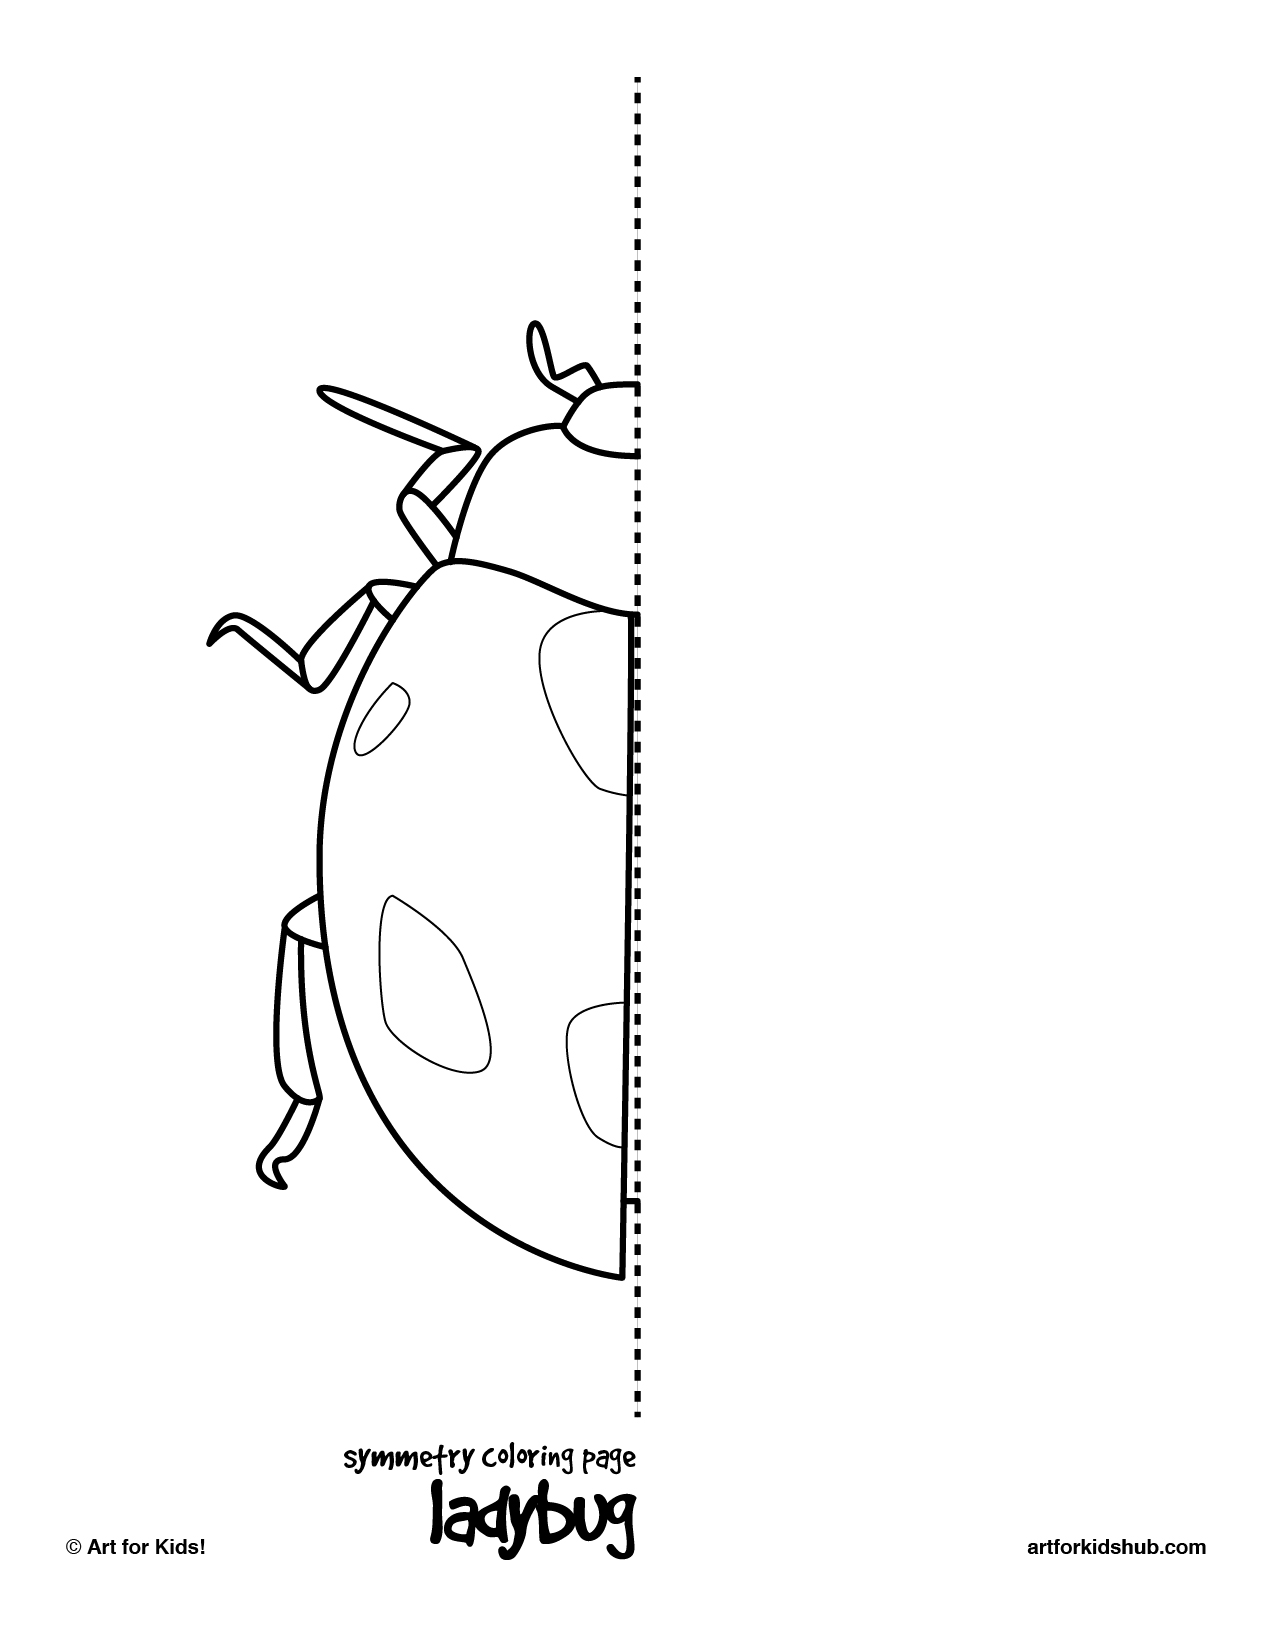 Coloring pages of ladybugs for kids - Symmetry Coloring Page Ladybug